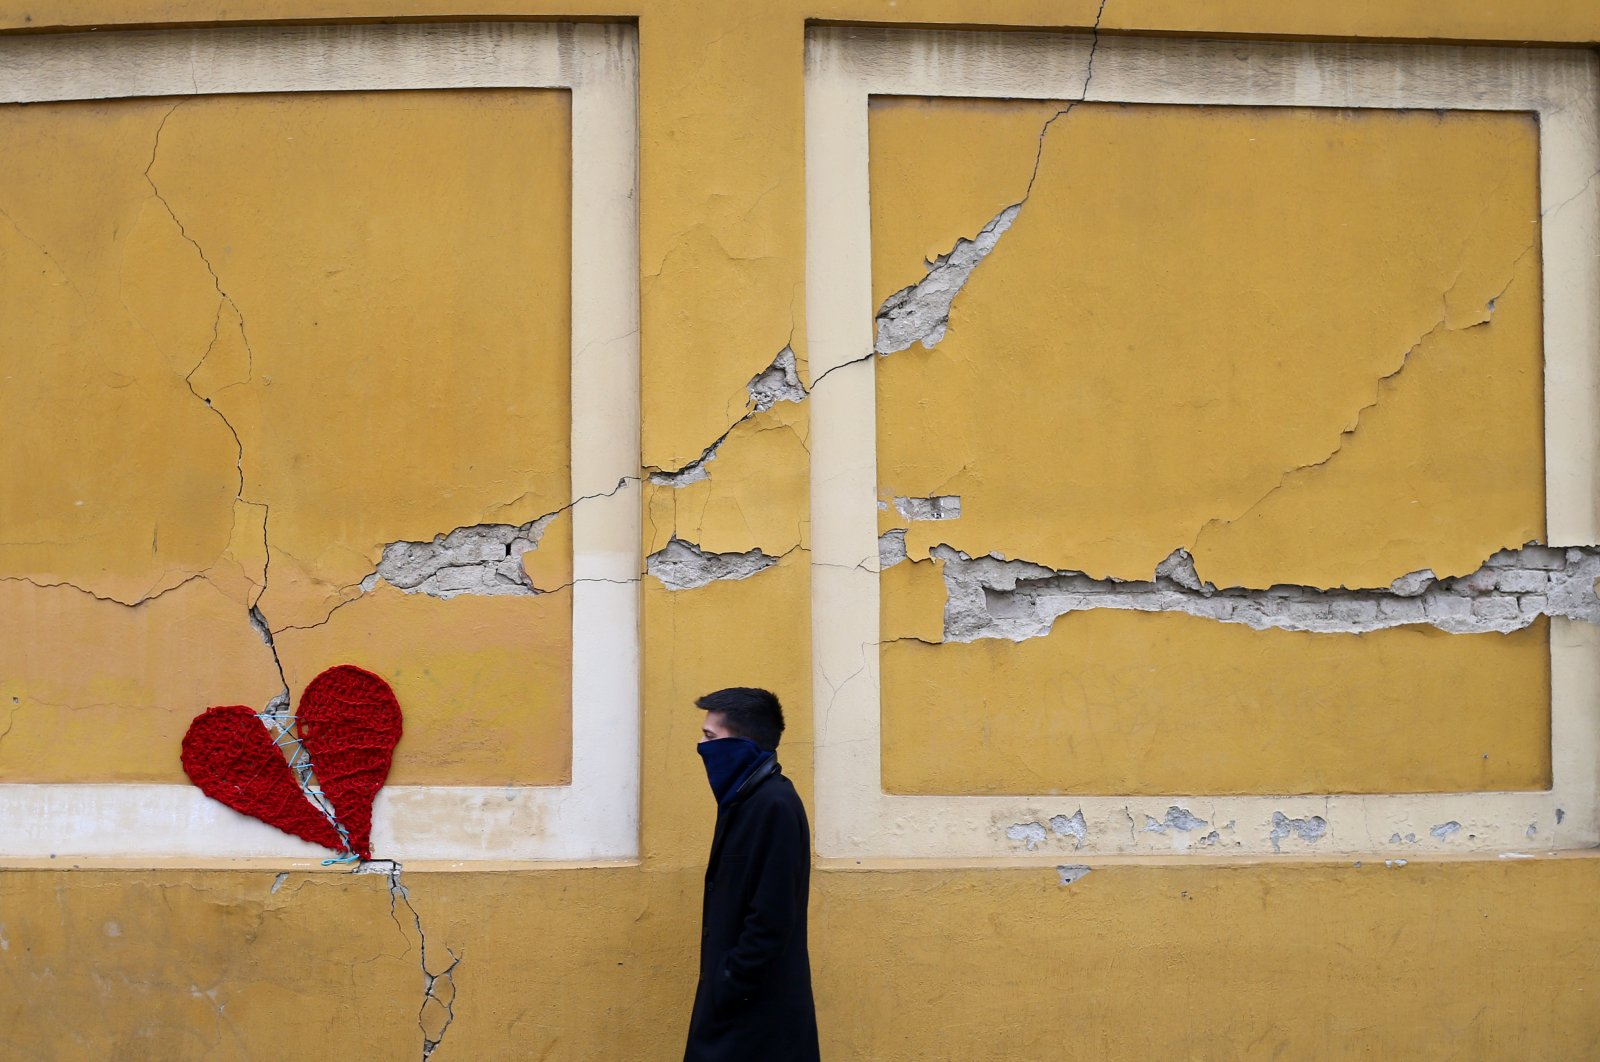 A man walks next to a repaired broken heart made of wool by Croatian designer Ivona, put on a building in downtown Zagreb, Croatia, March 25, 2020, as the country is fighting coronavirus disease (COVID-19) outbreak and the aftermatch of an earthquake that hit the country on March 22. (Reuters Photo)